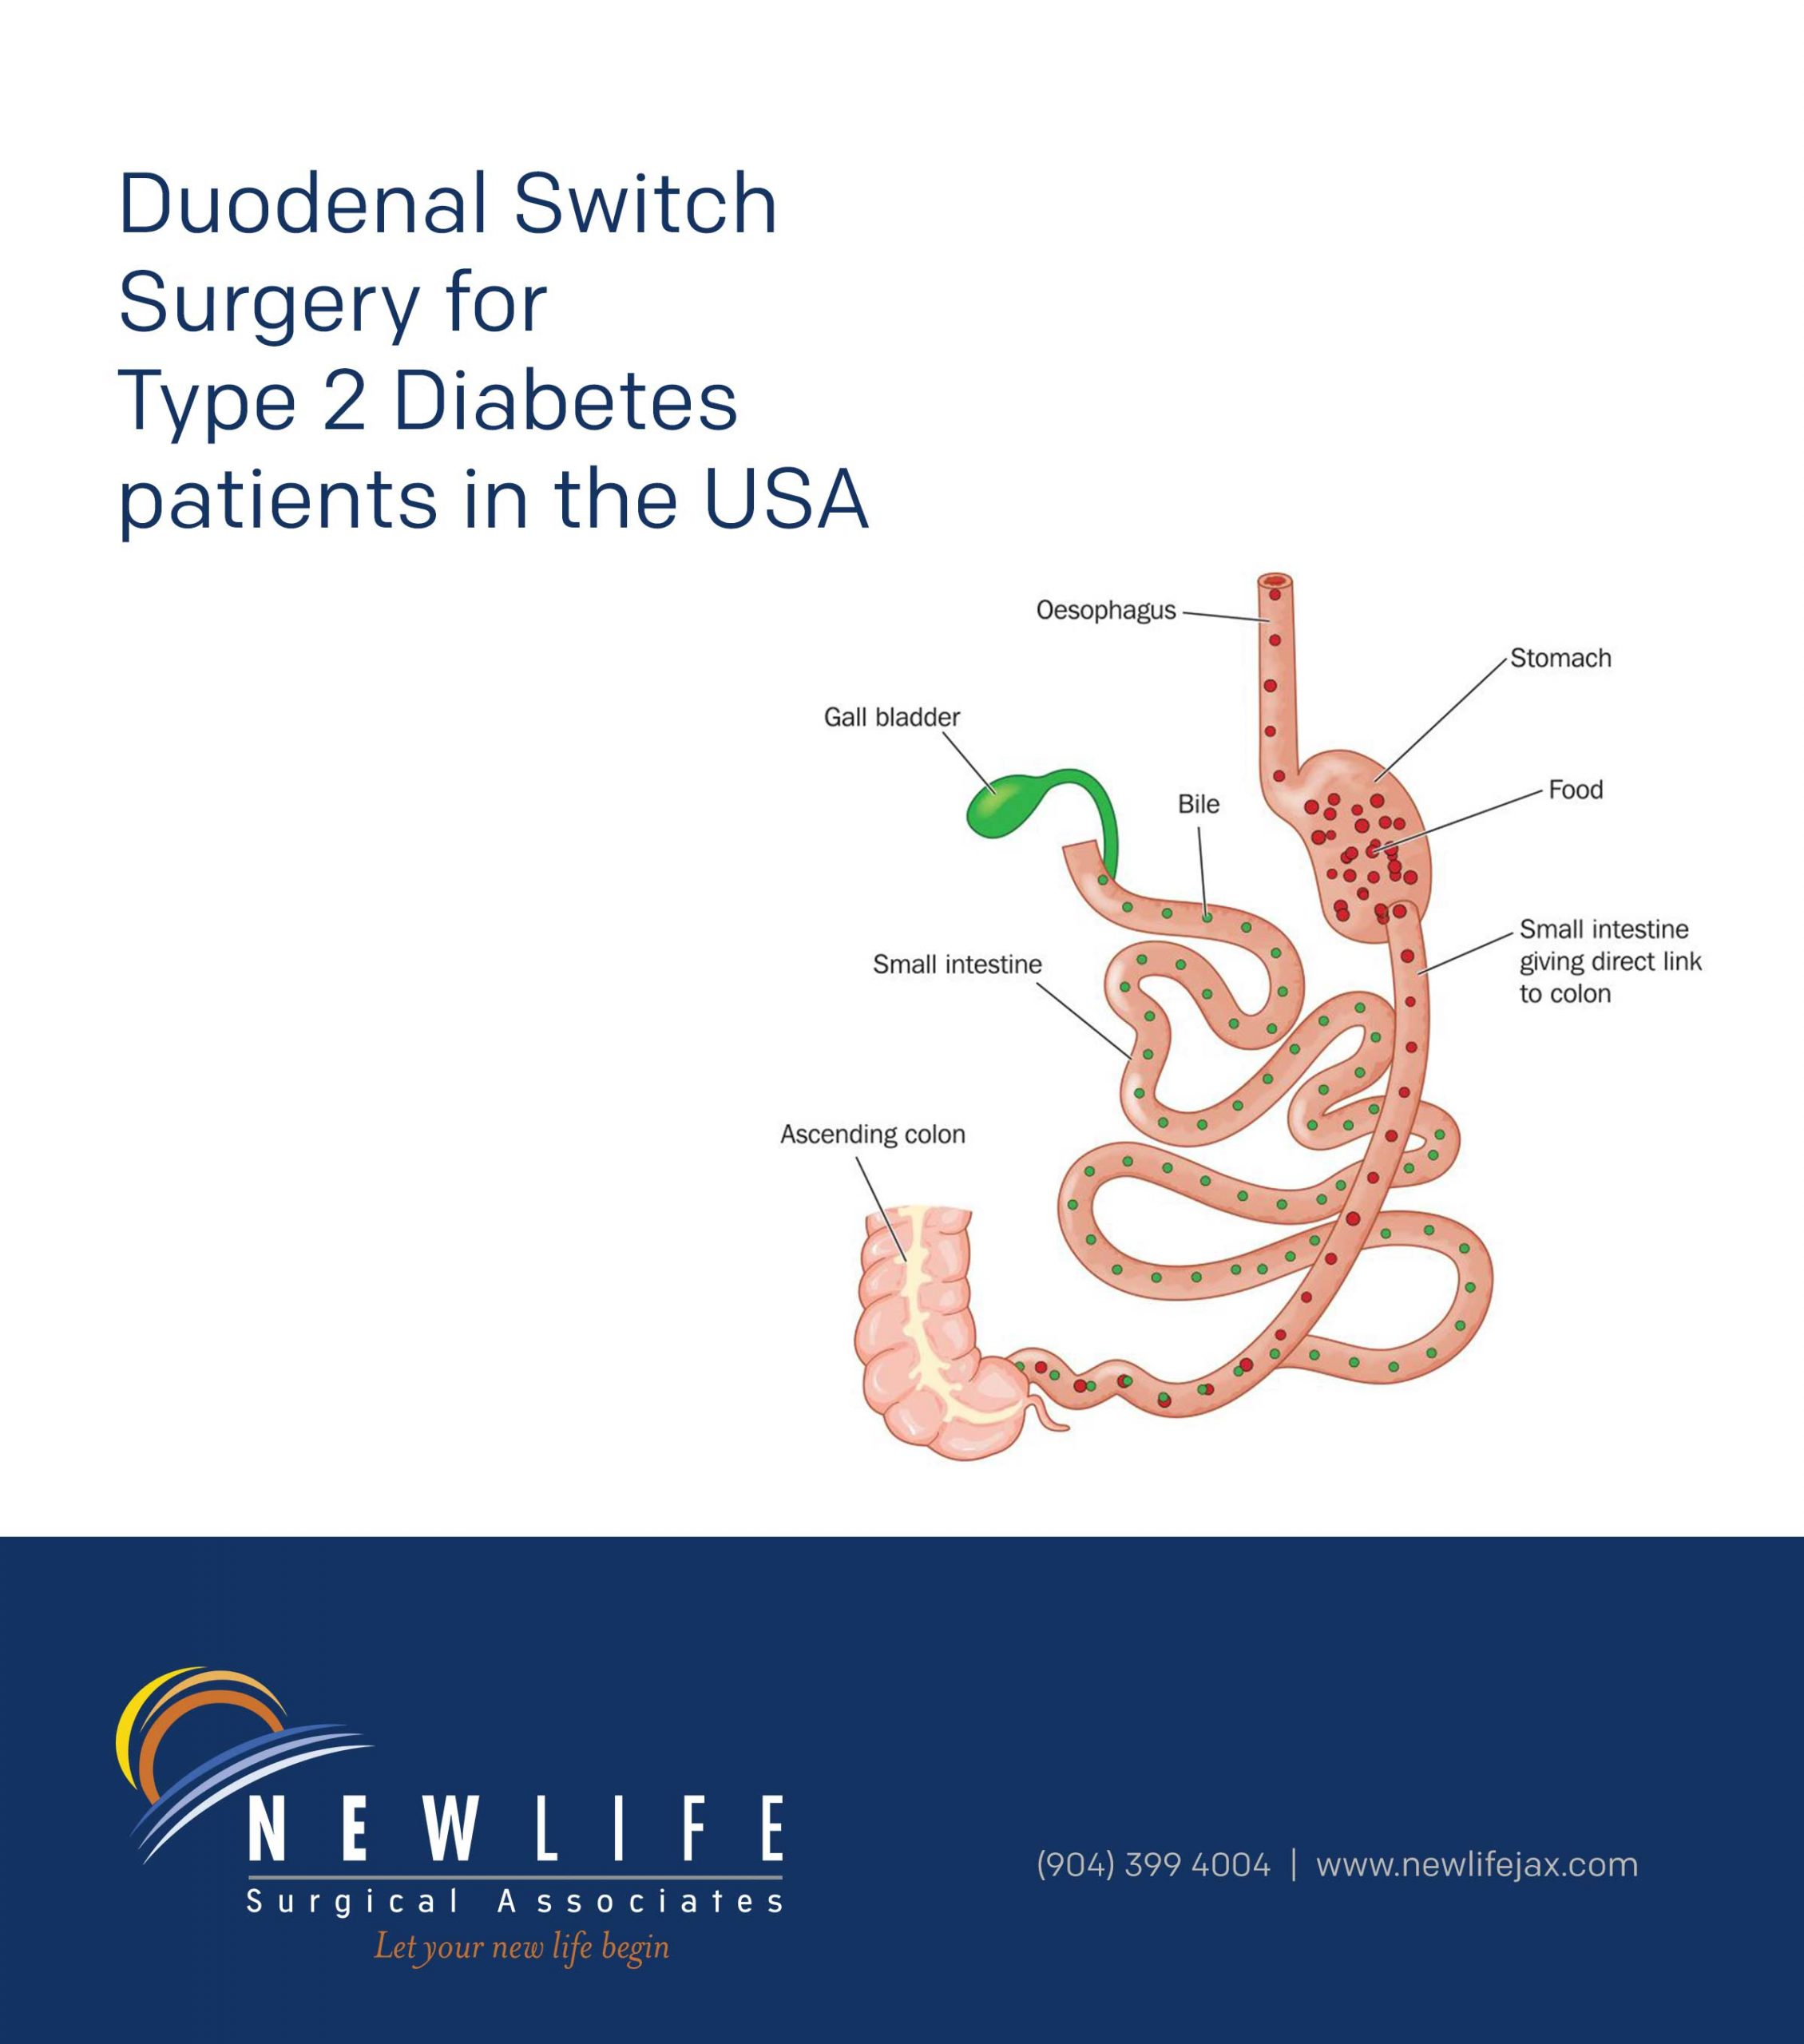 Duodenal Switch Surgery for Type 2 Diabetes patients in the USA